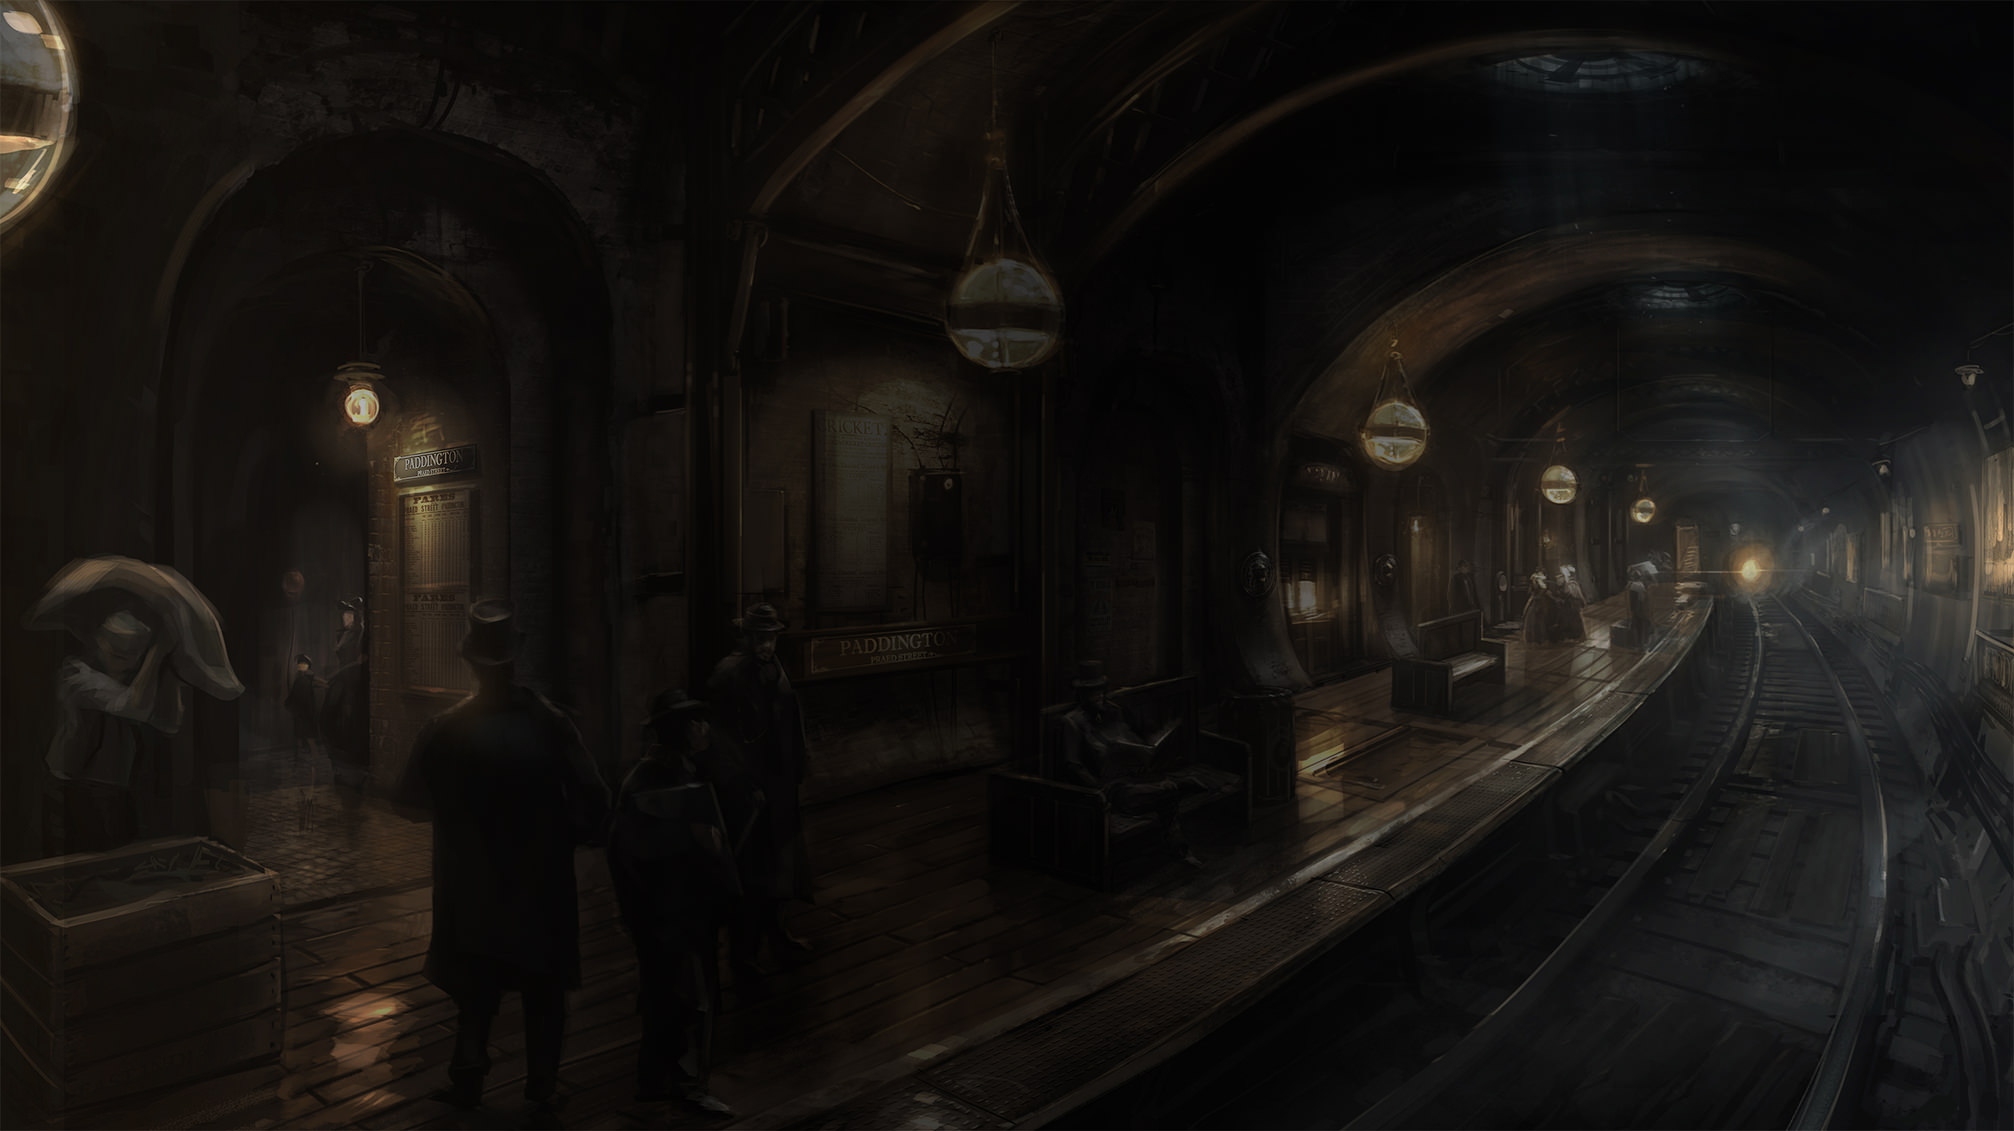 PS4 Exclusive The Order 1886 Gets New Gorgeous Looking